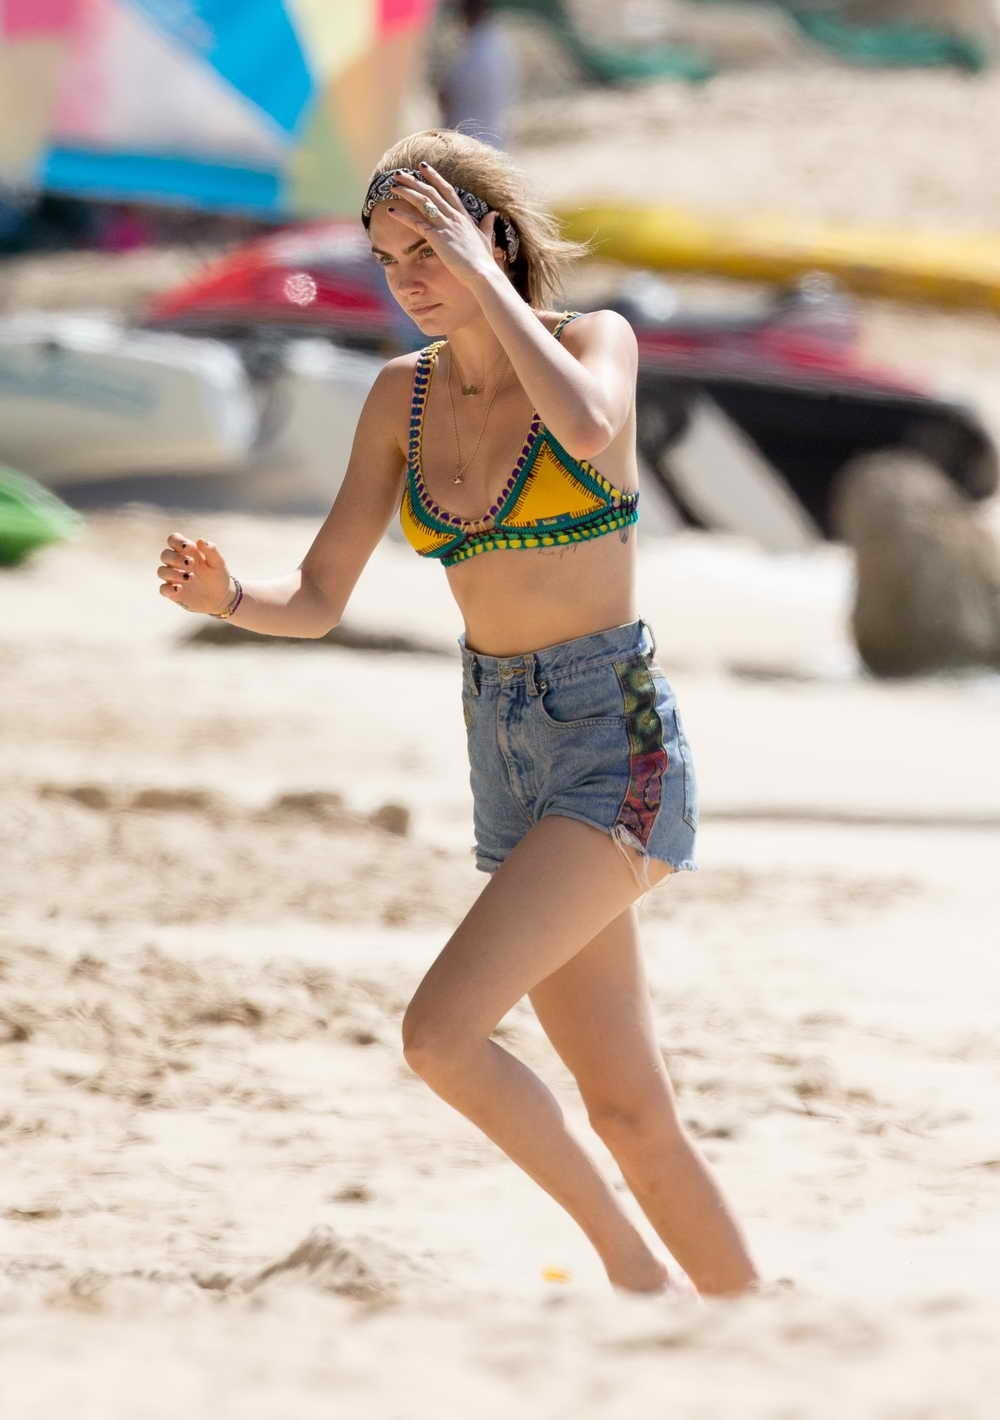 Cara Delevingne In Bikini Top At The Beach In Barbados Cara Delevingne